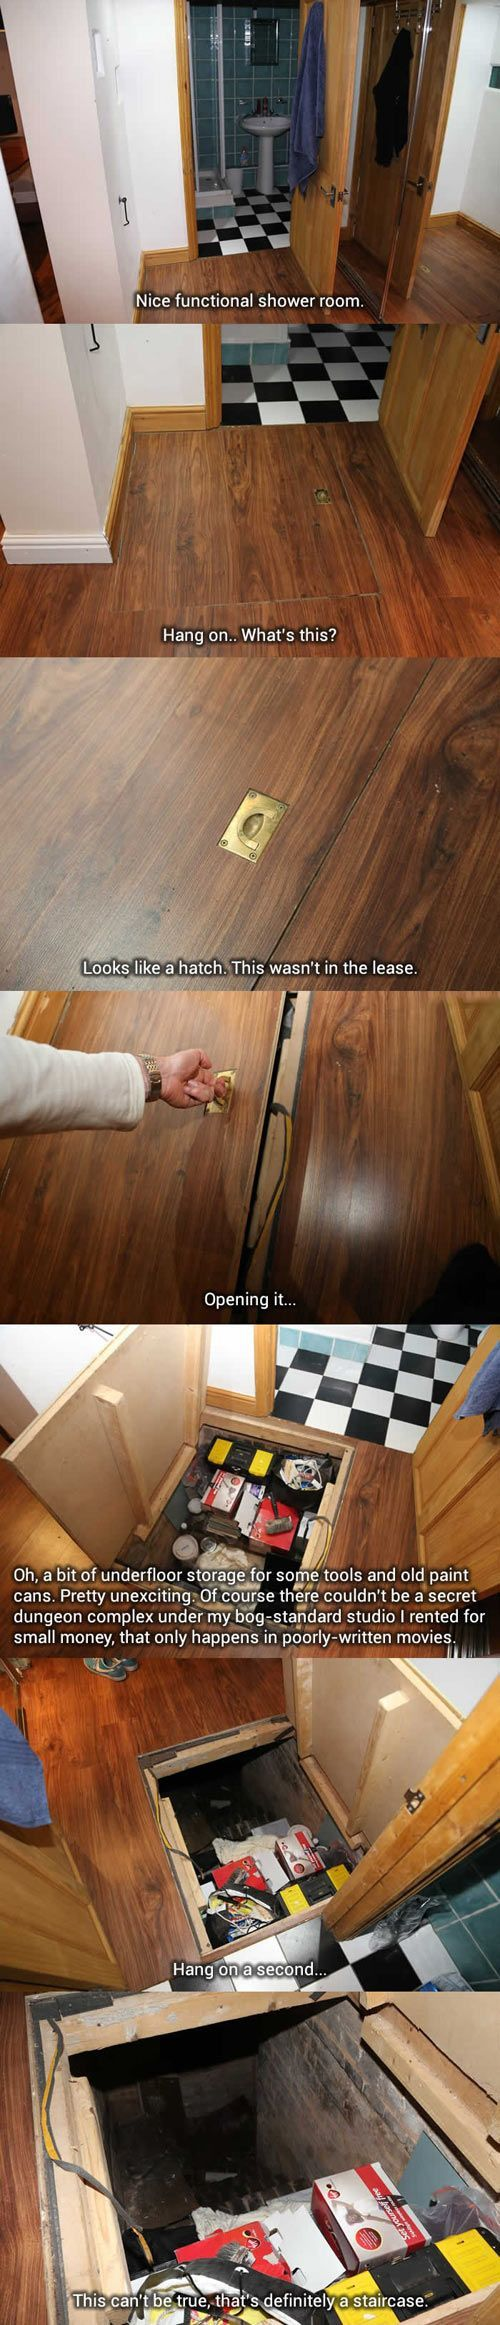 freaking awesome apartment if u click on the picture there is more. It will tell u the whole story